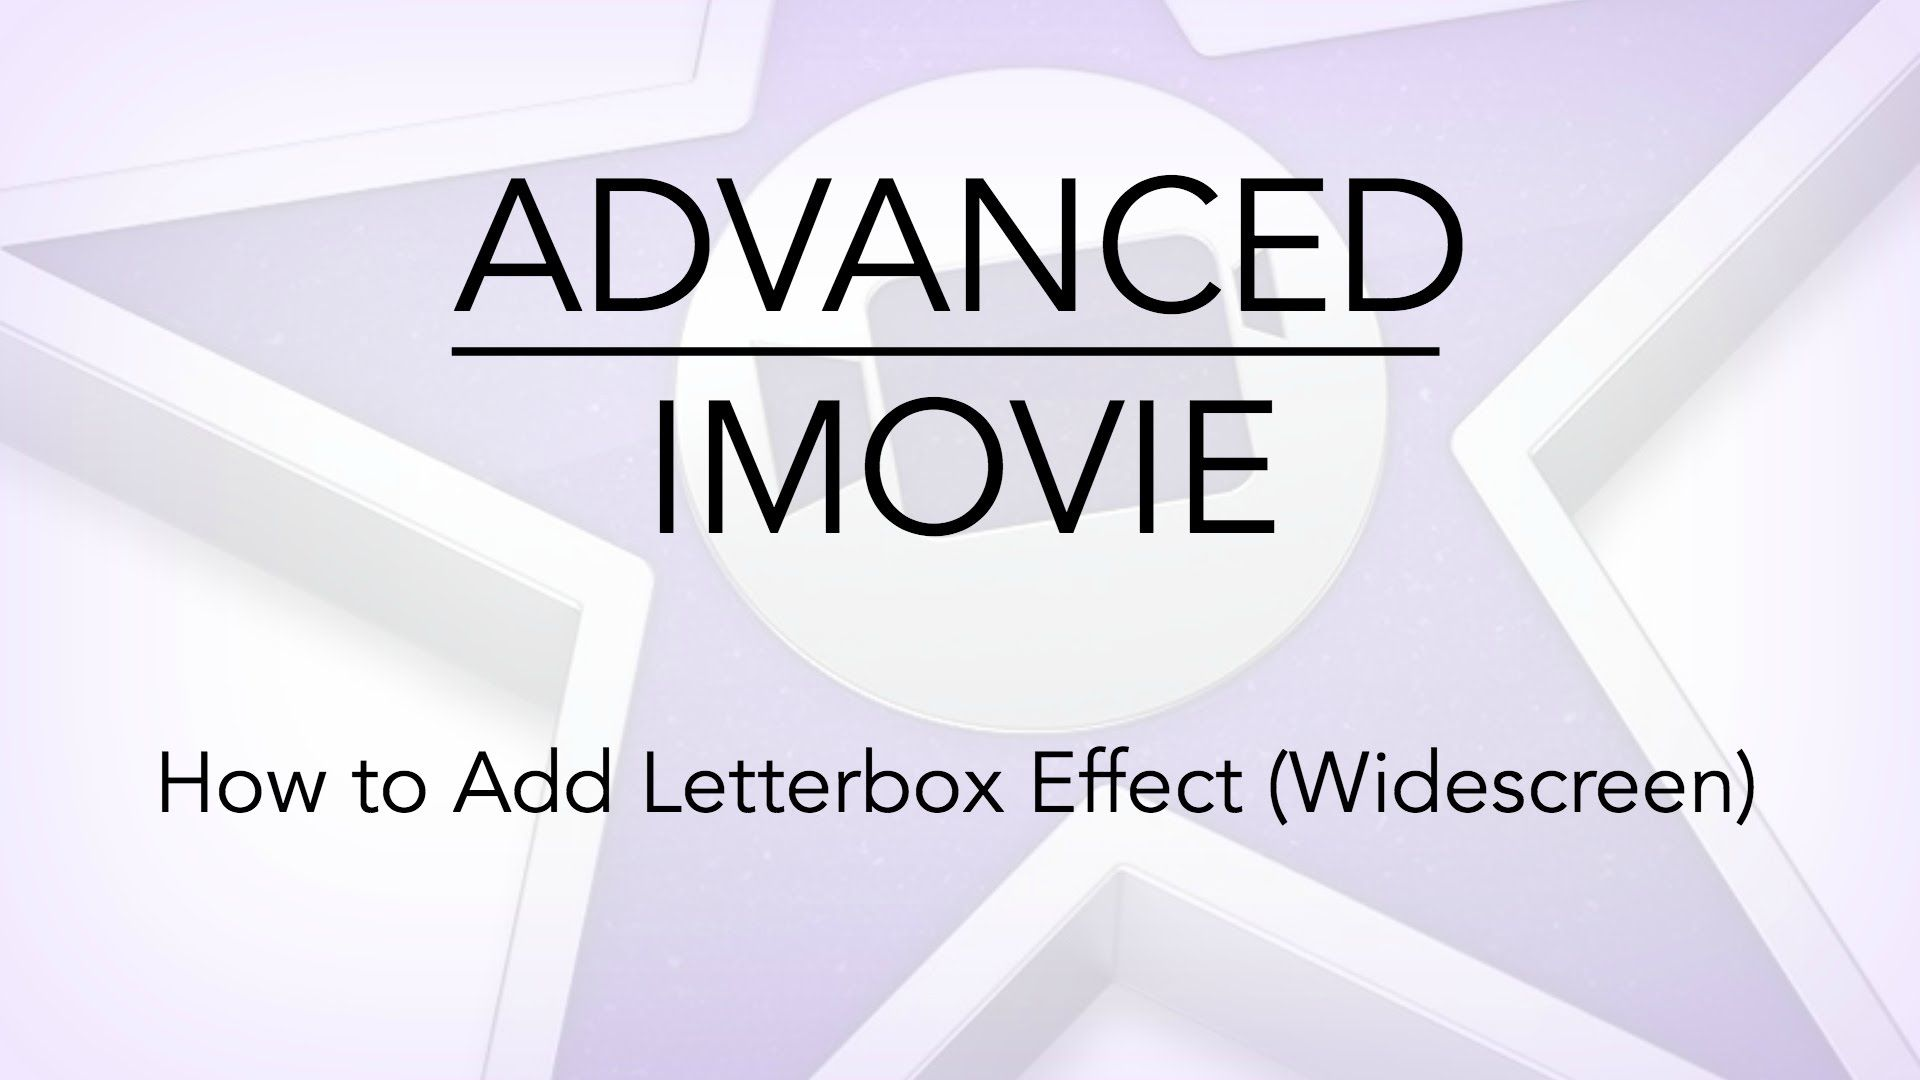 Advanced imovie how to add letterbox effect widescreen imovie advanced imovie how to add letterbox effect widescreen spiritdancerdesigns